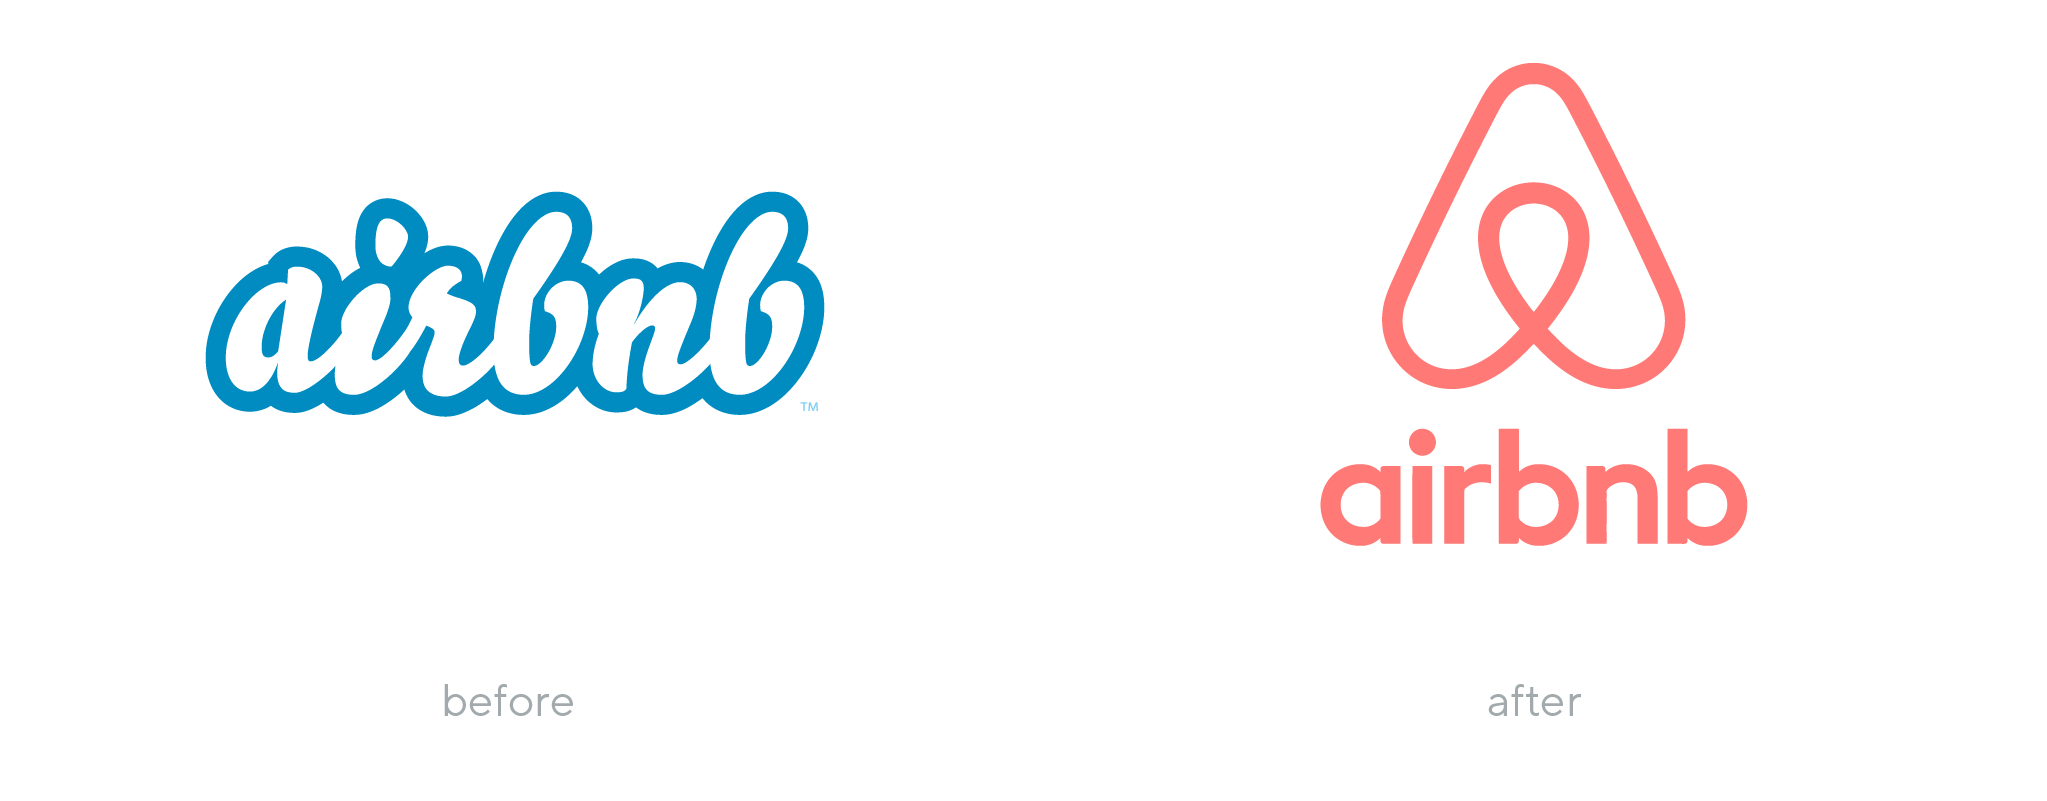 Airbnb logo before and after rebranding